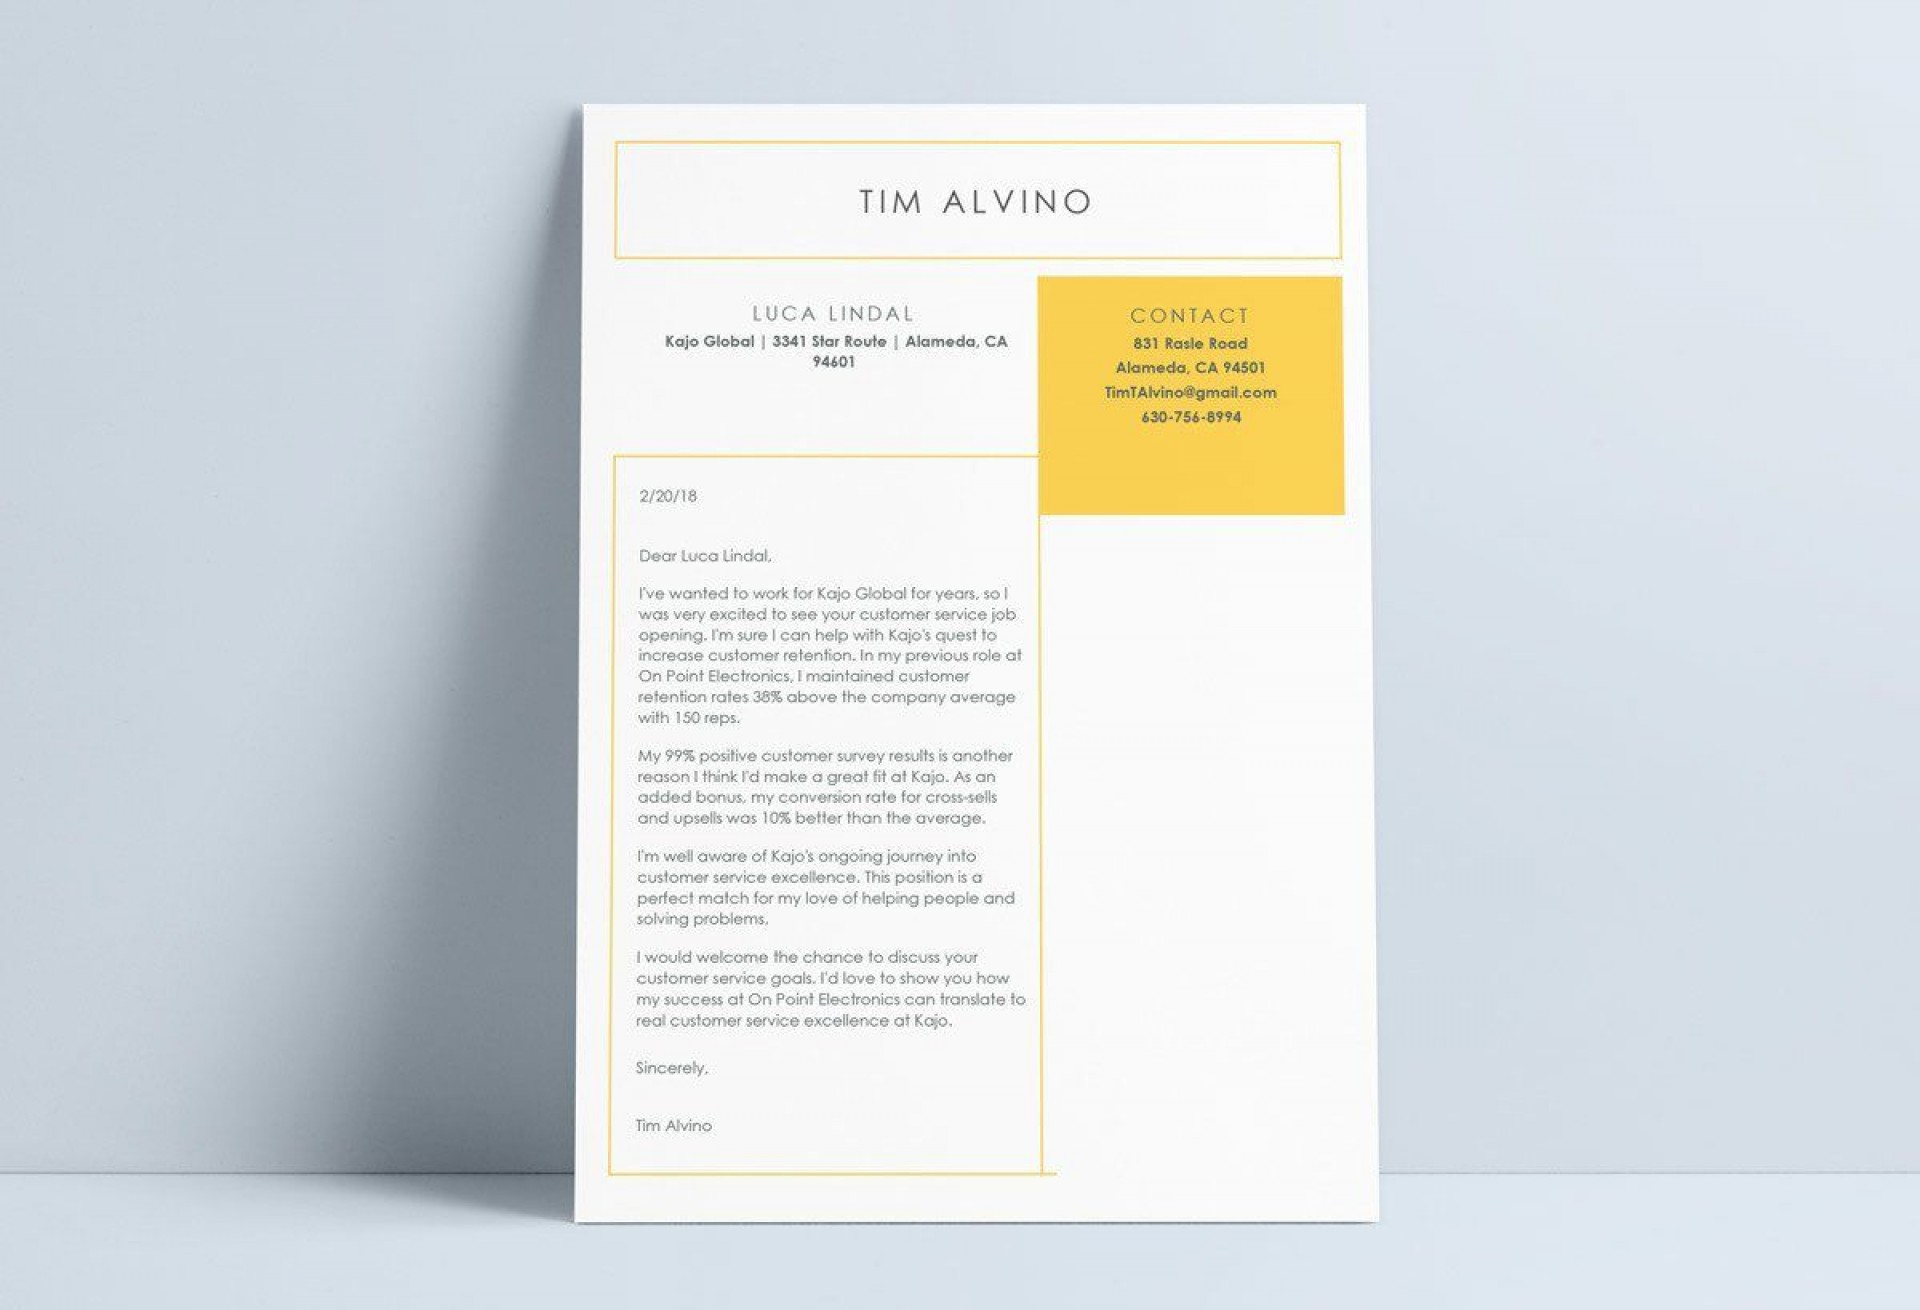 002 Unusual Microsoft Cover Letter Template Photo  Templates Free Resume Word Download 2010 Page1920